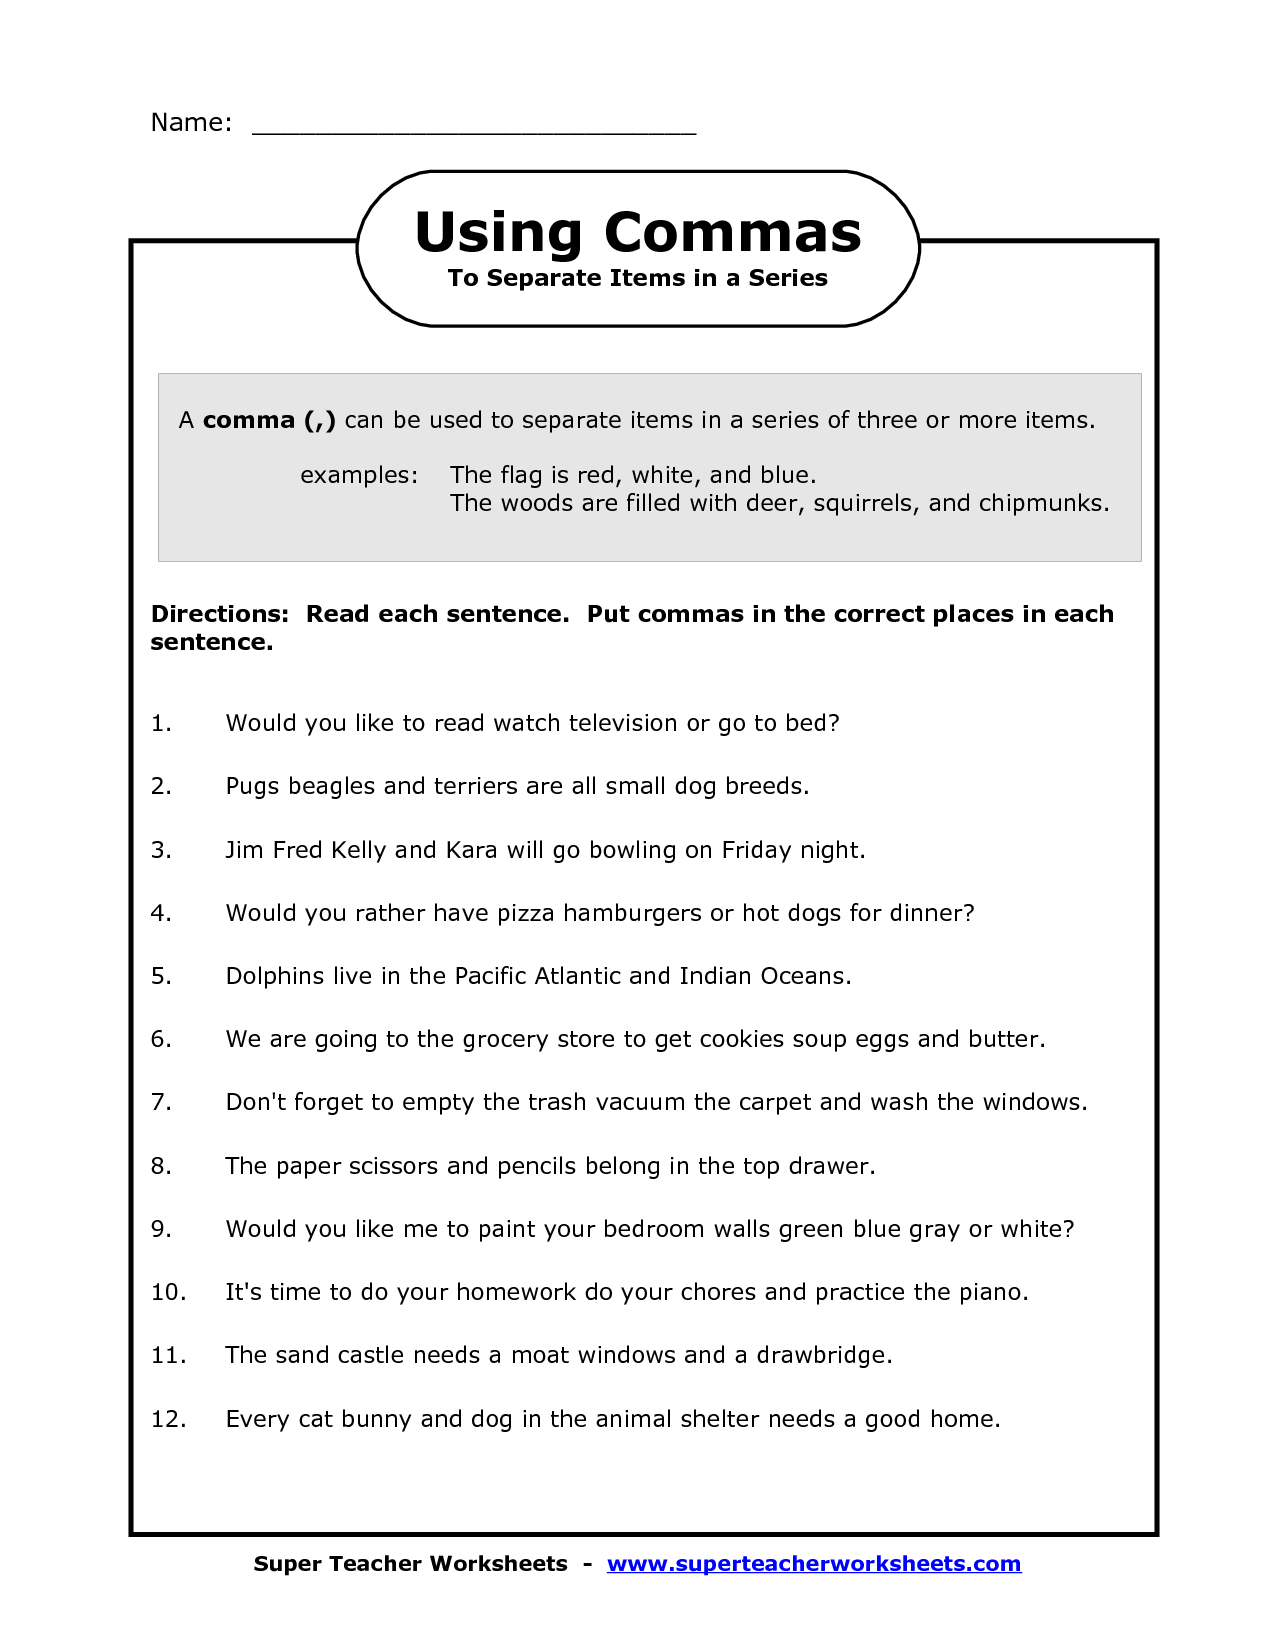 comma in a series worksheets image – Comma Worksheets